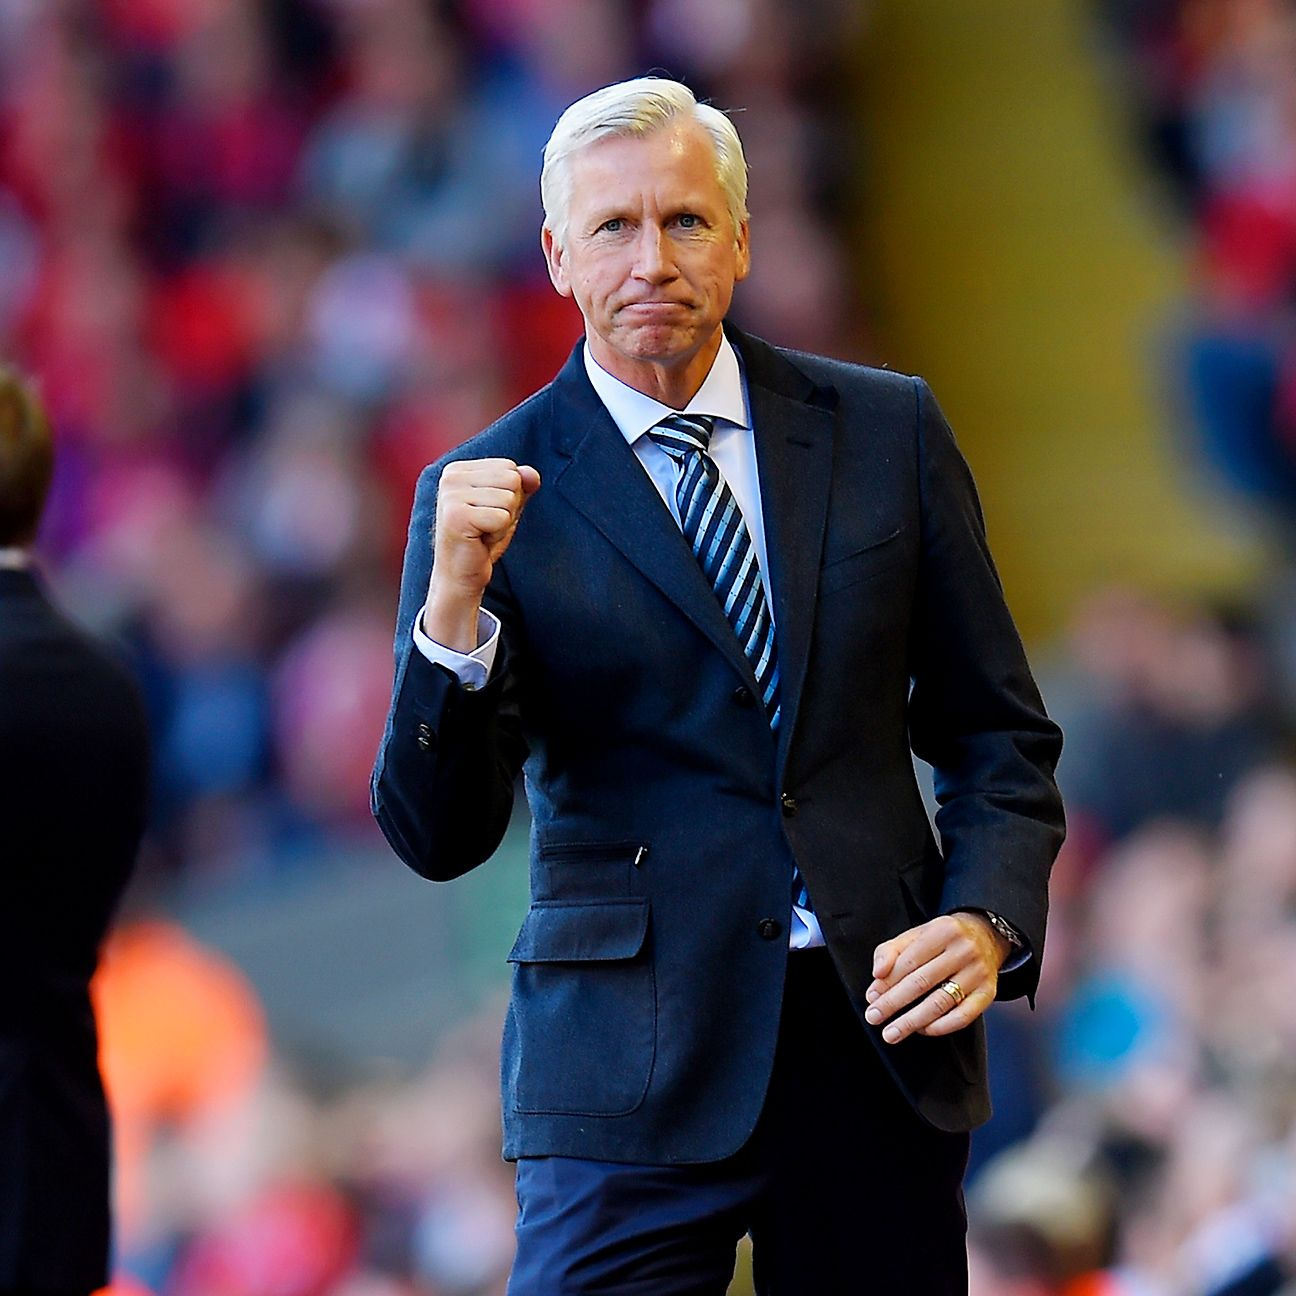 Alan Pardew will be hoping Crystal Palace's early season momentum continues against Manchester City.